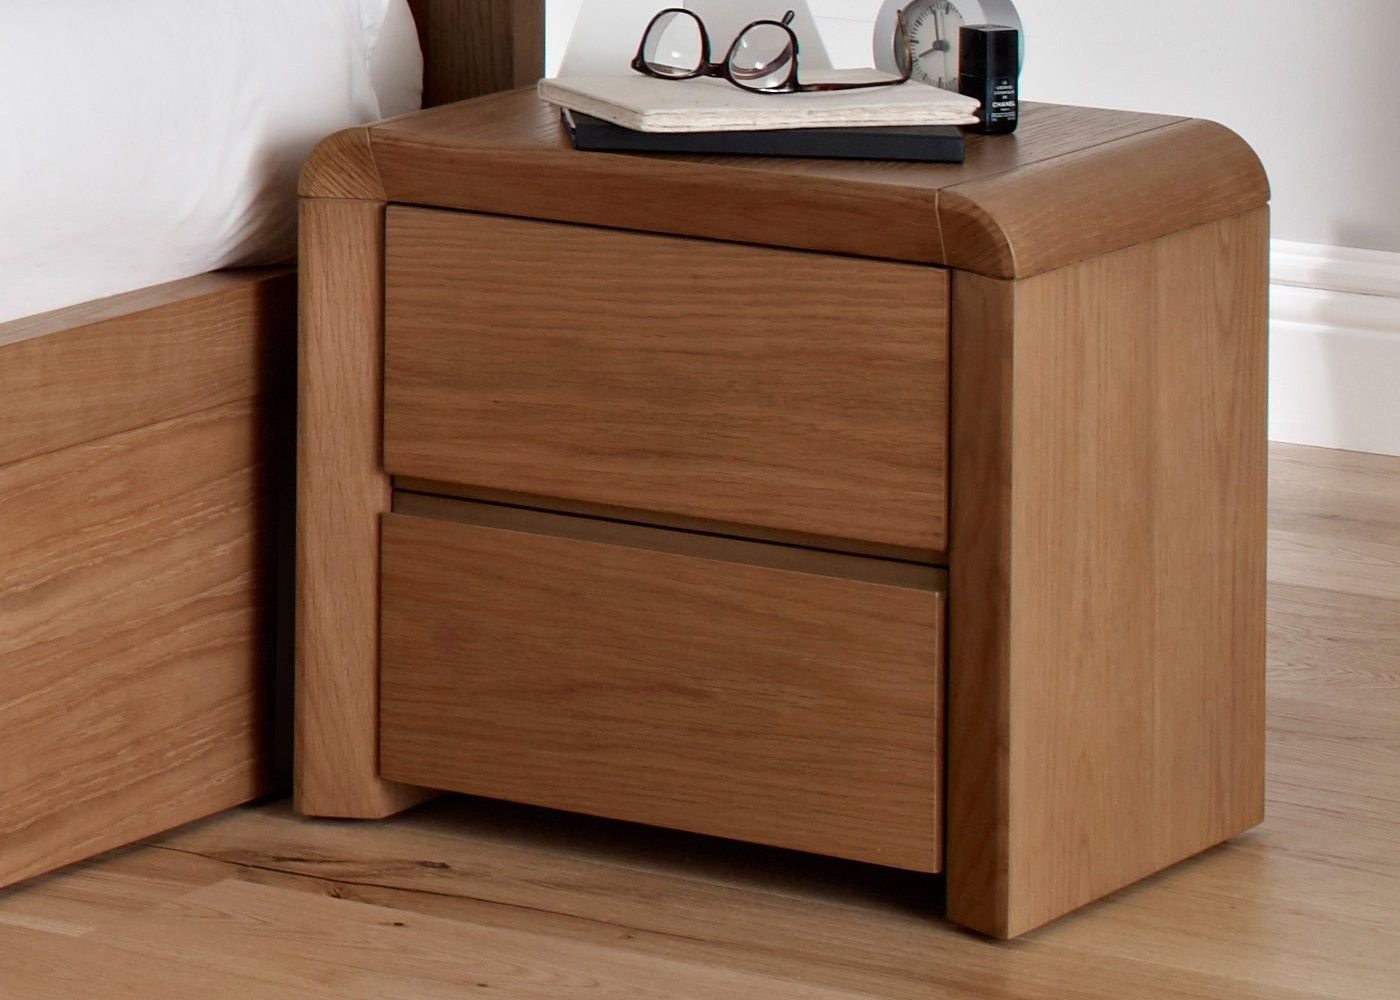 Bedroom stylish bedside table ideas with charming wooden bedside bedroom stylish bedside table ideas with charming wooden bedside table and cool two drawers also beautiful bright brown laminate flooring for classic watchthetrailerfo